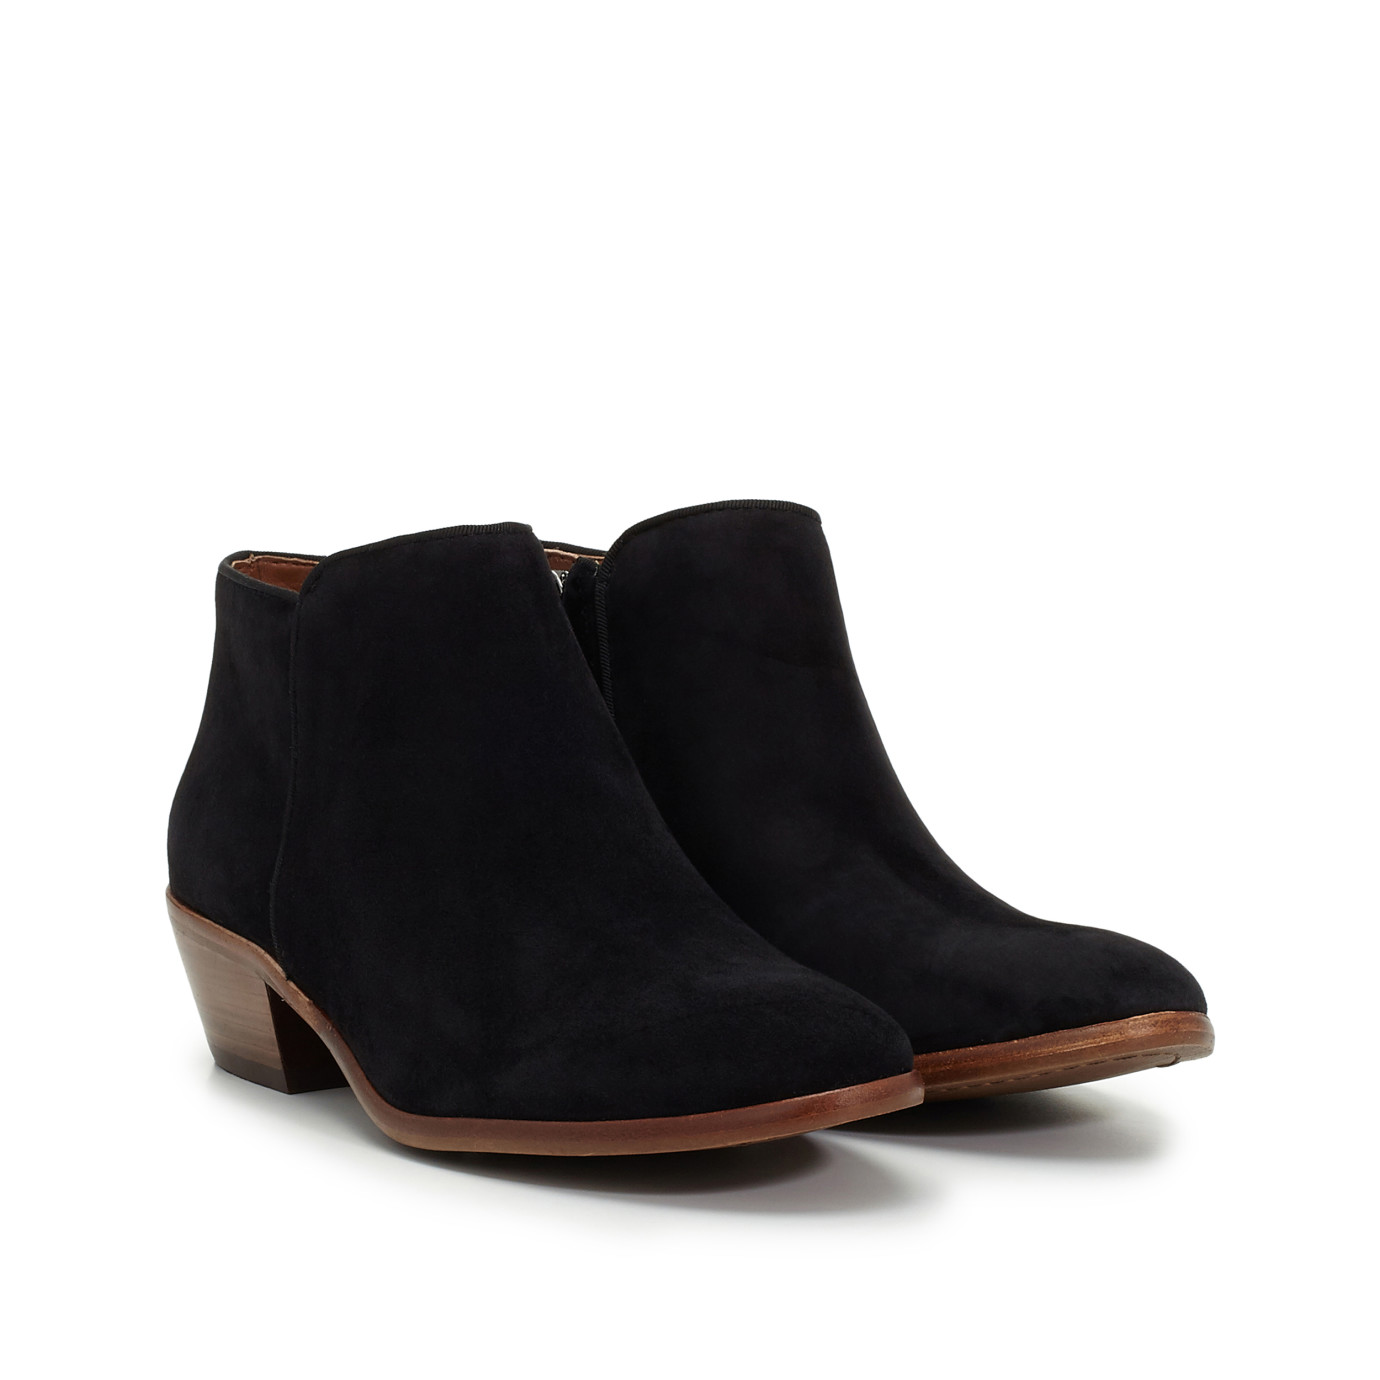 ankle boot petty ankle bootie - boots | samedelman.com PGEAFVT